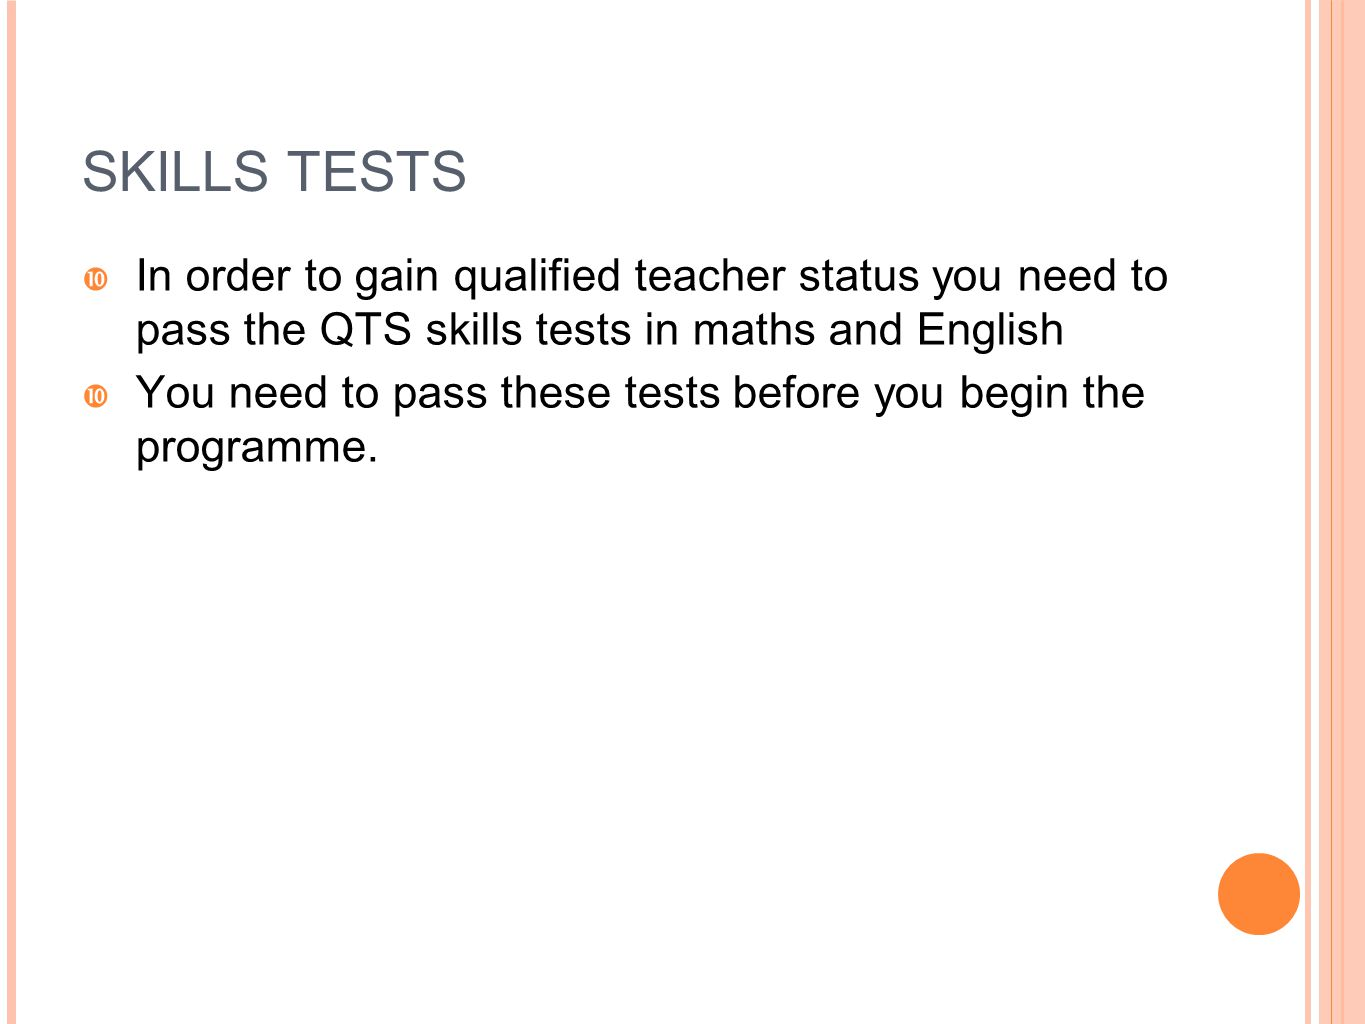 SKILLS TESTS In order to gain qualified teacher status you need to pass the QTS skills tests in maths and English.